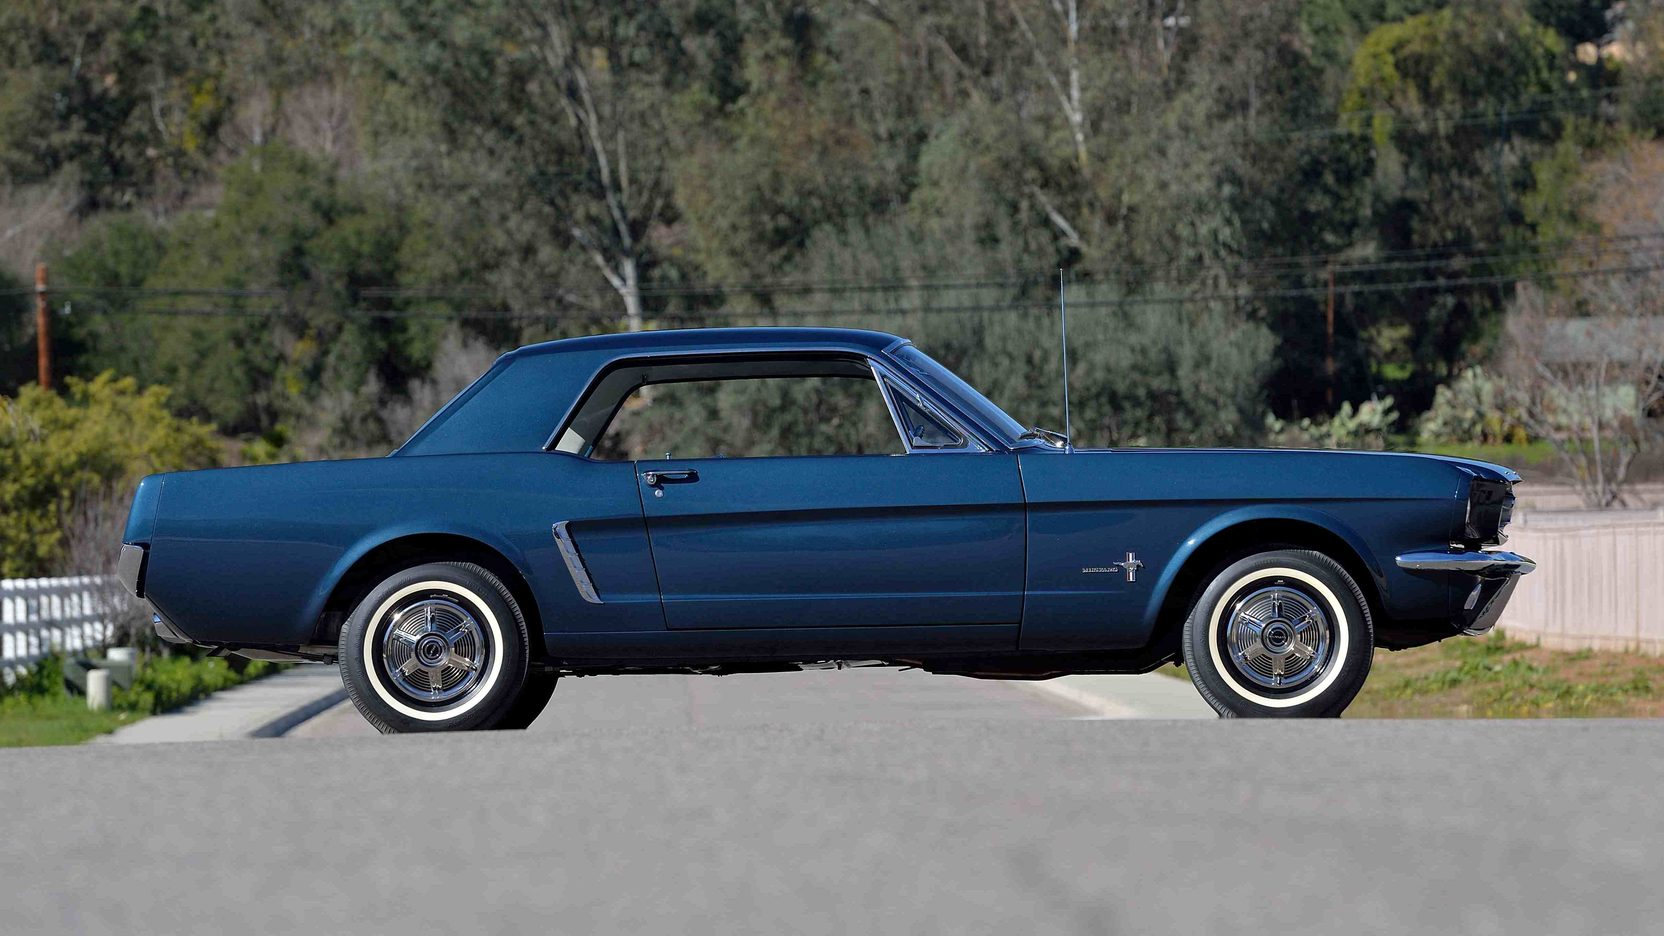 1965 Ford Mustang profile